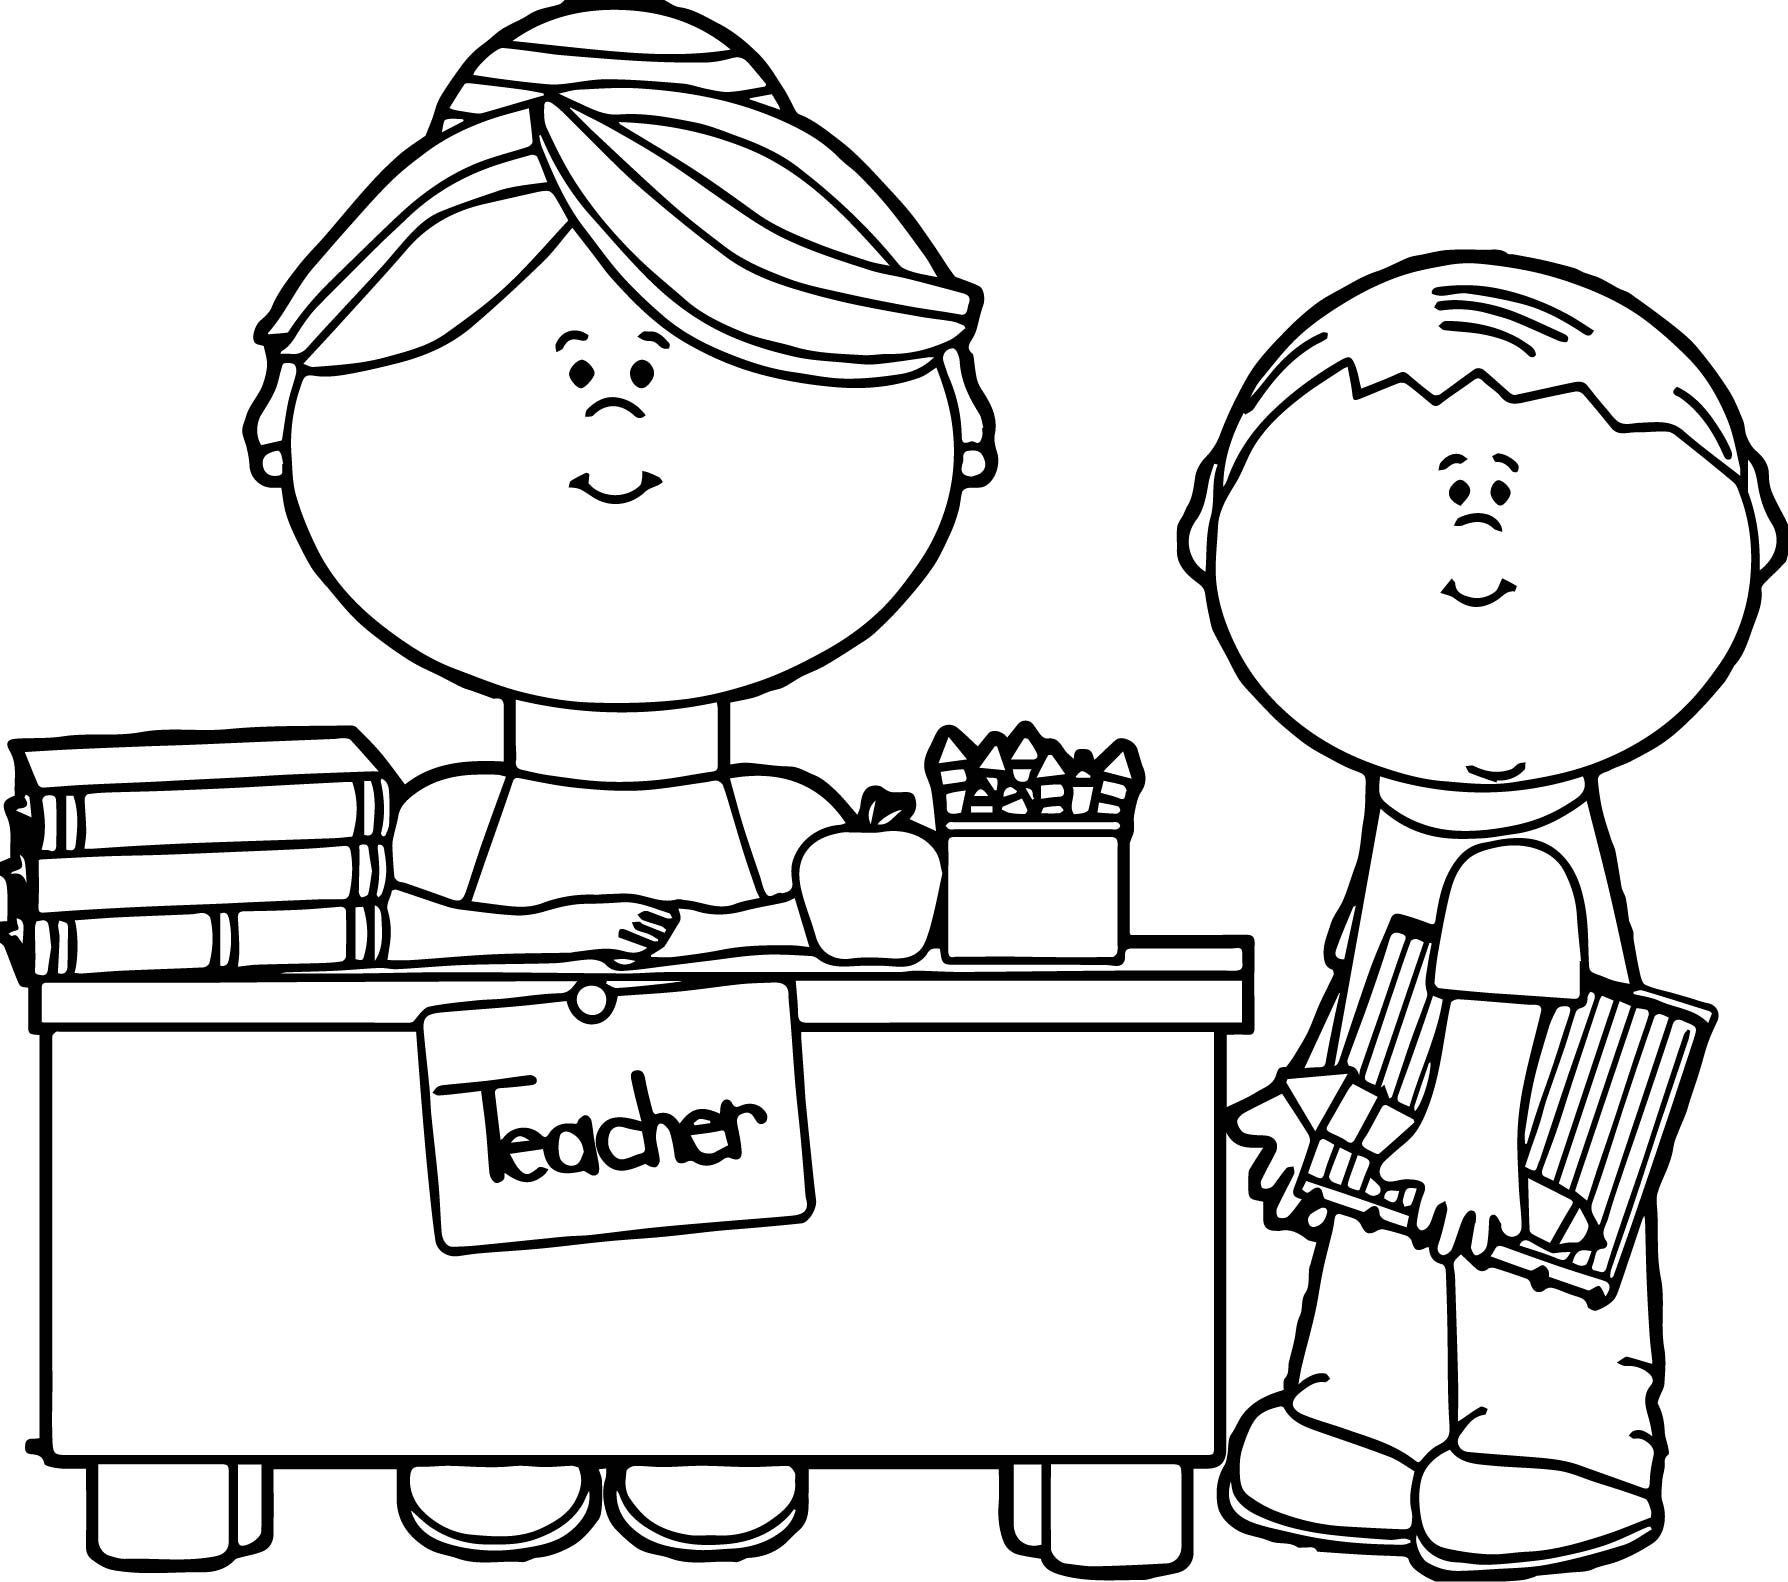 teacher for coloring teacher coloring pages best coloring pages for kids coloring for teacher